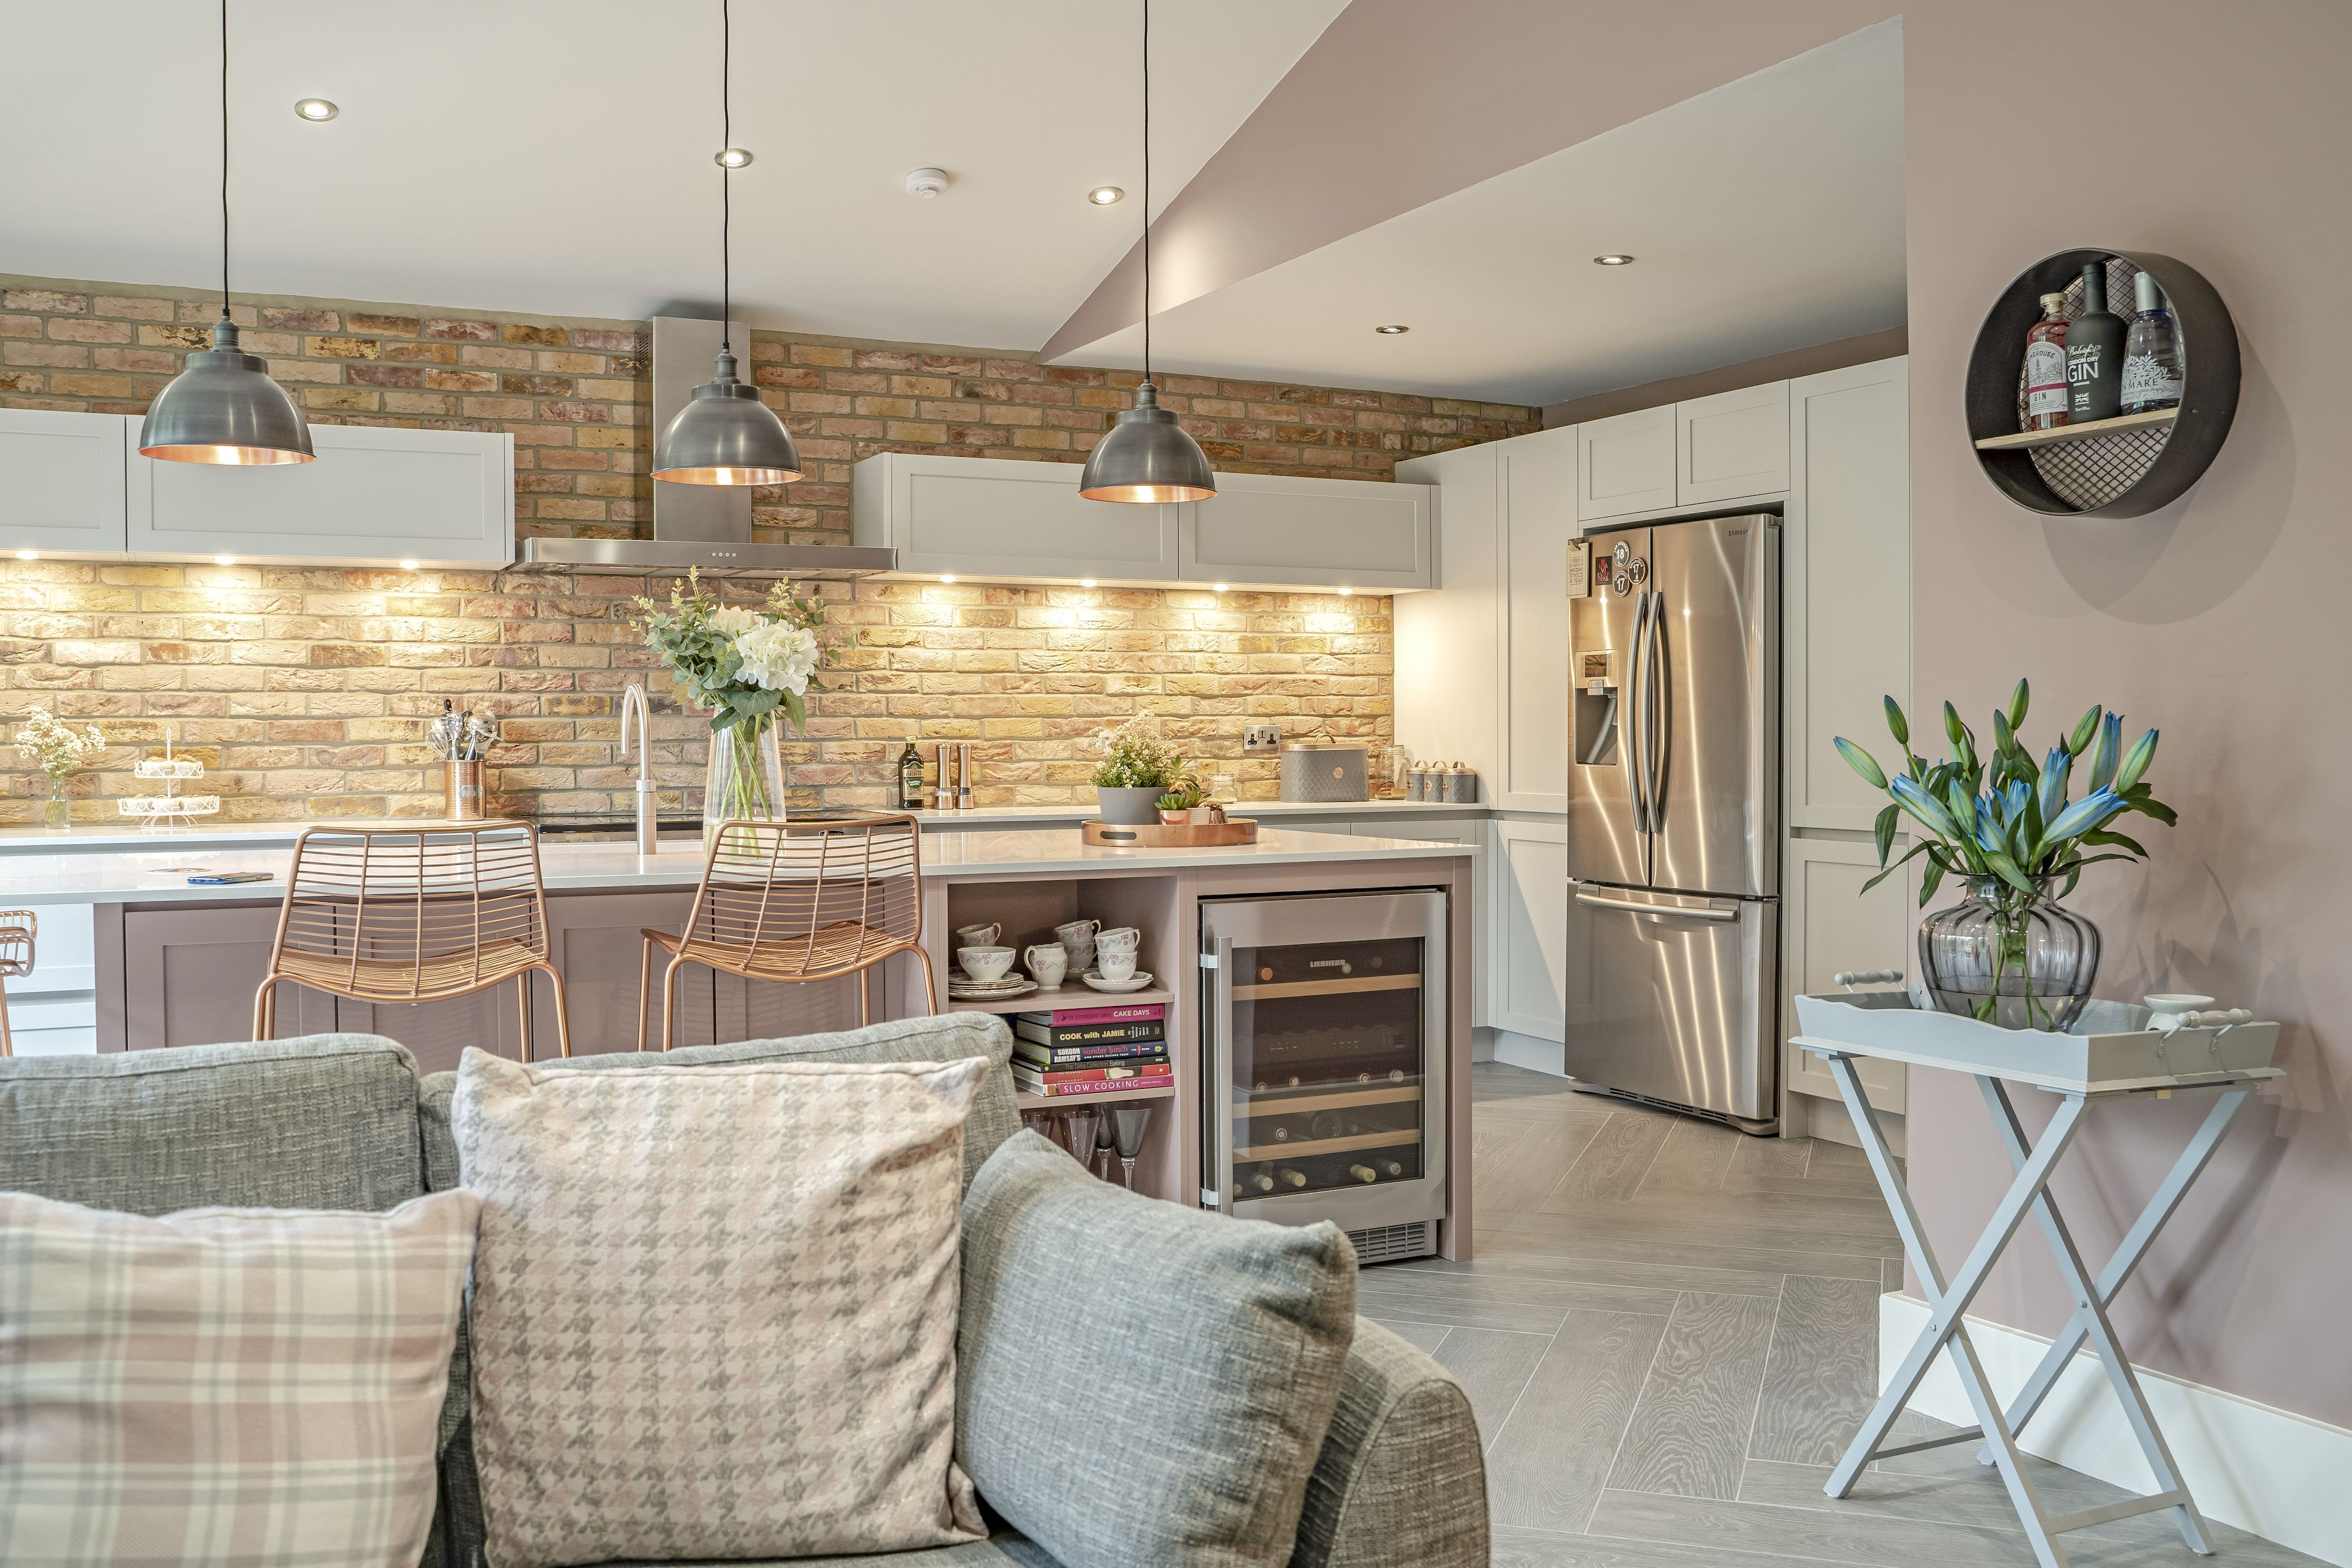 Best Farrow And Ball Pink Paint Inspires Watermark Kitchen 400 x 300